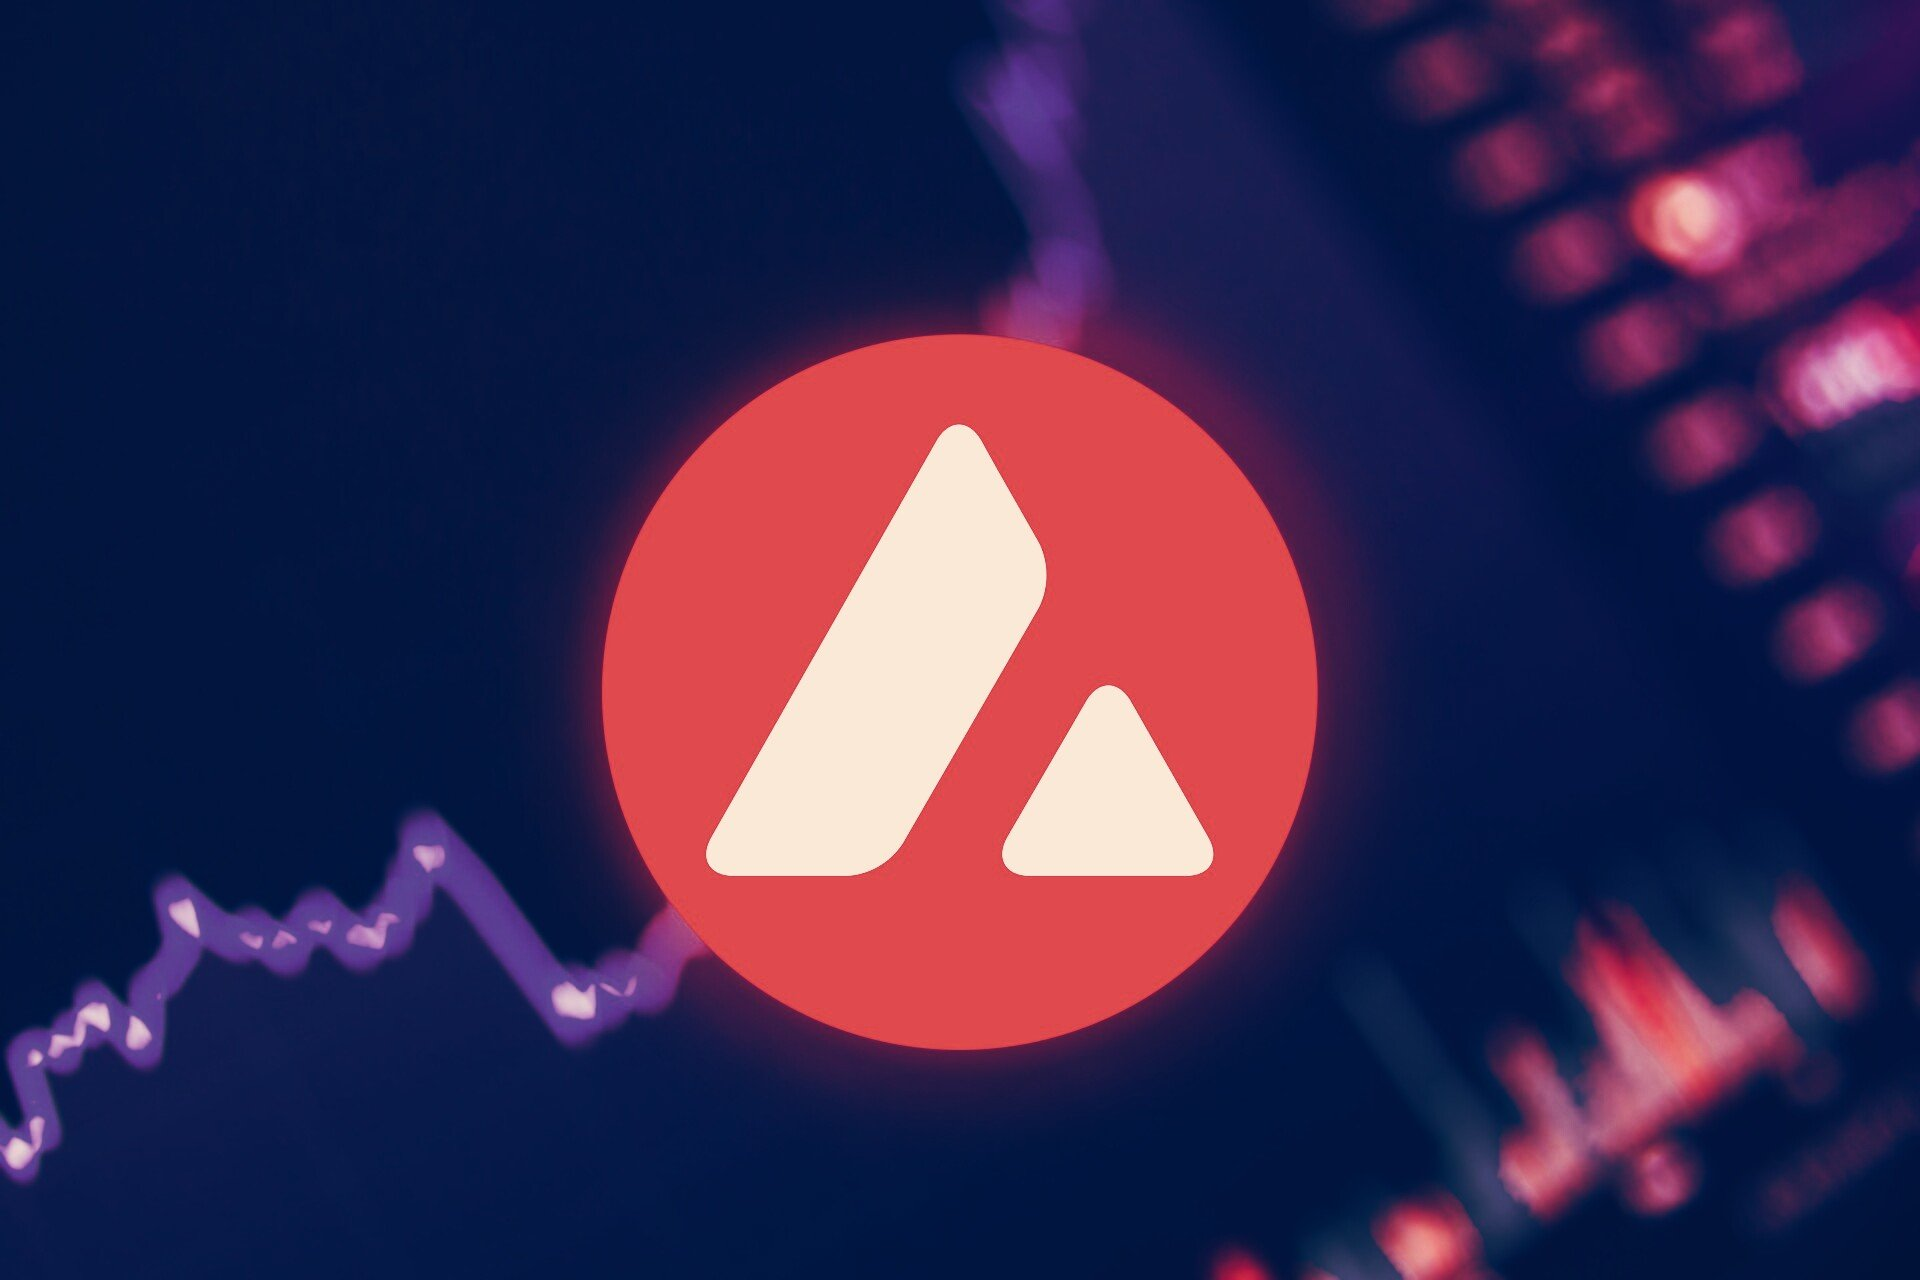 Avalanche network launches $180m fund to develop DeFi projects